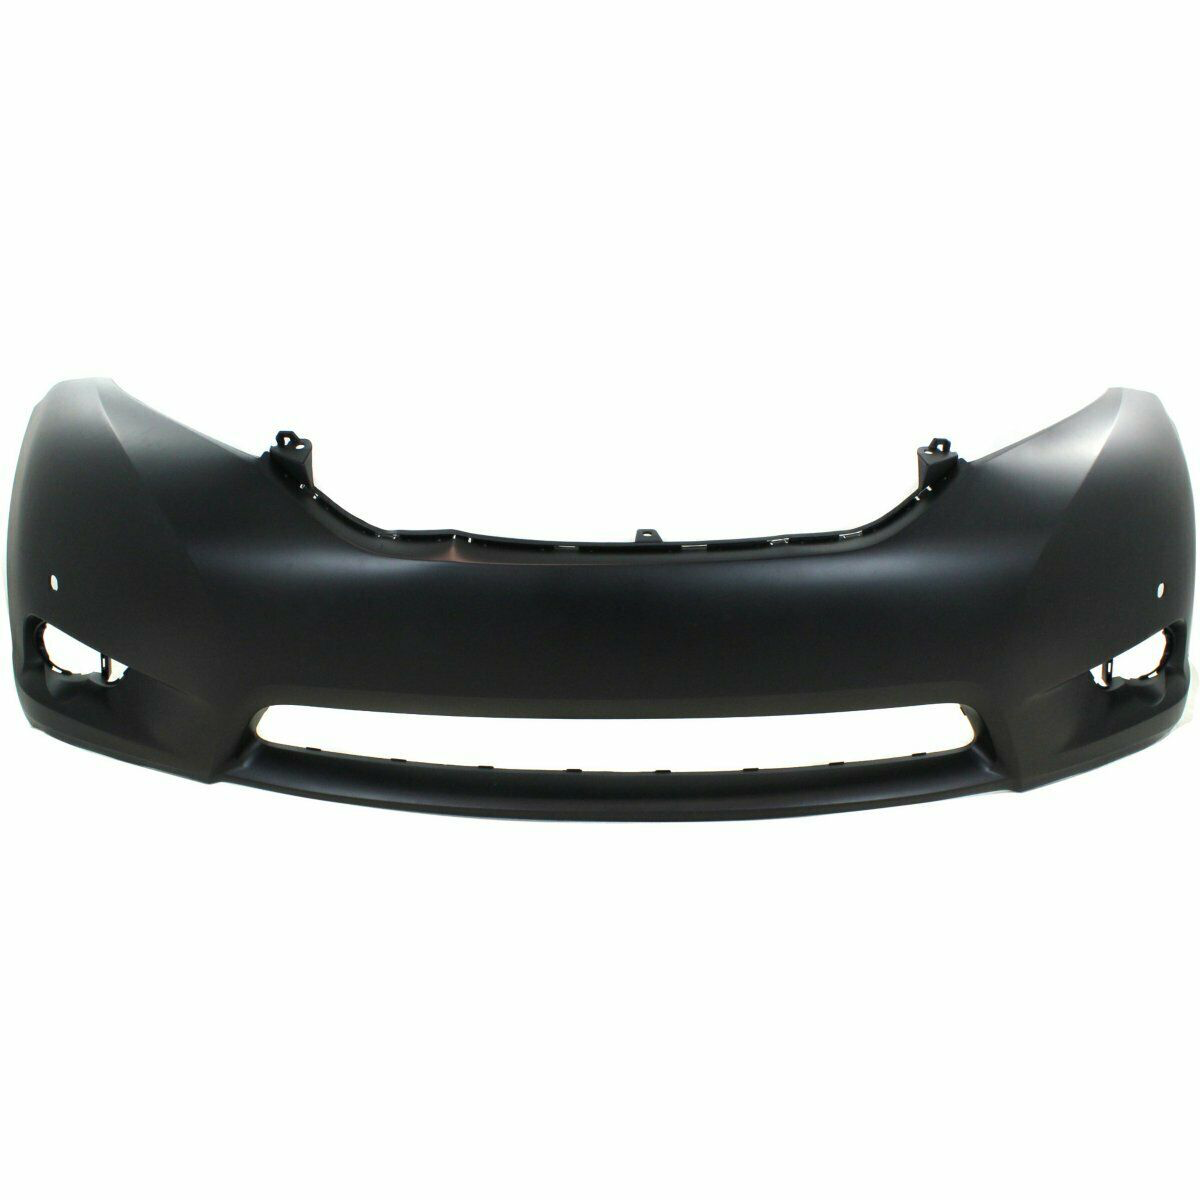 2011-2012 Toyota SIenna w/ Sensor holes Front Bumper Painted to Match